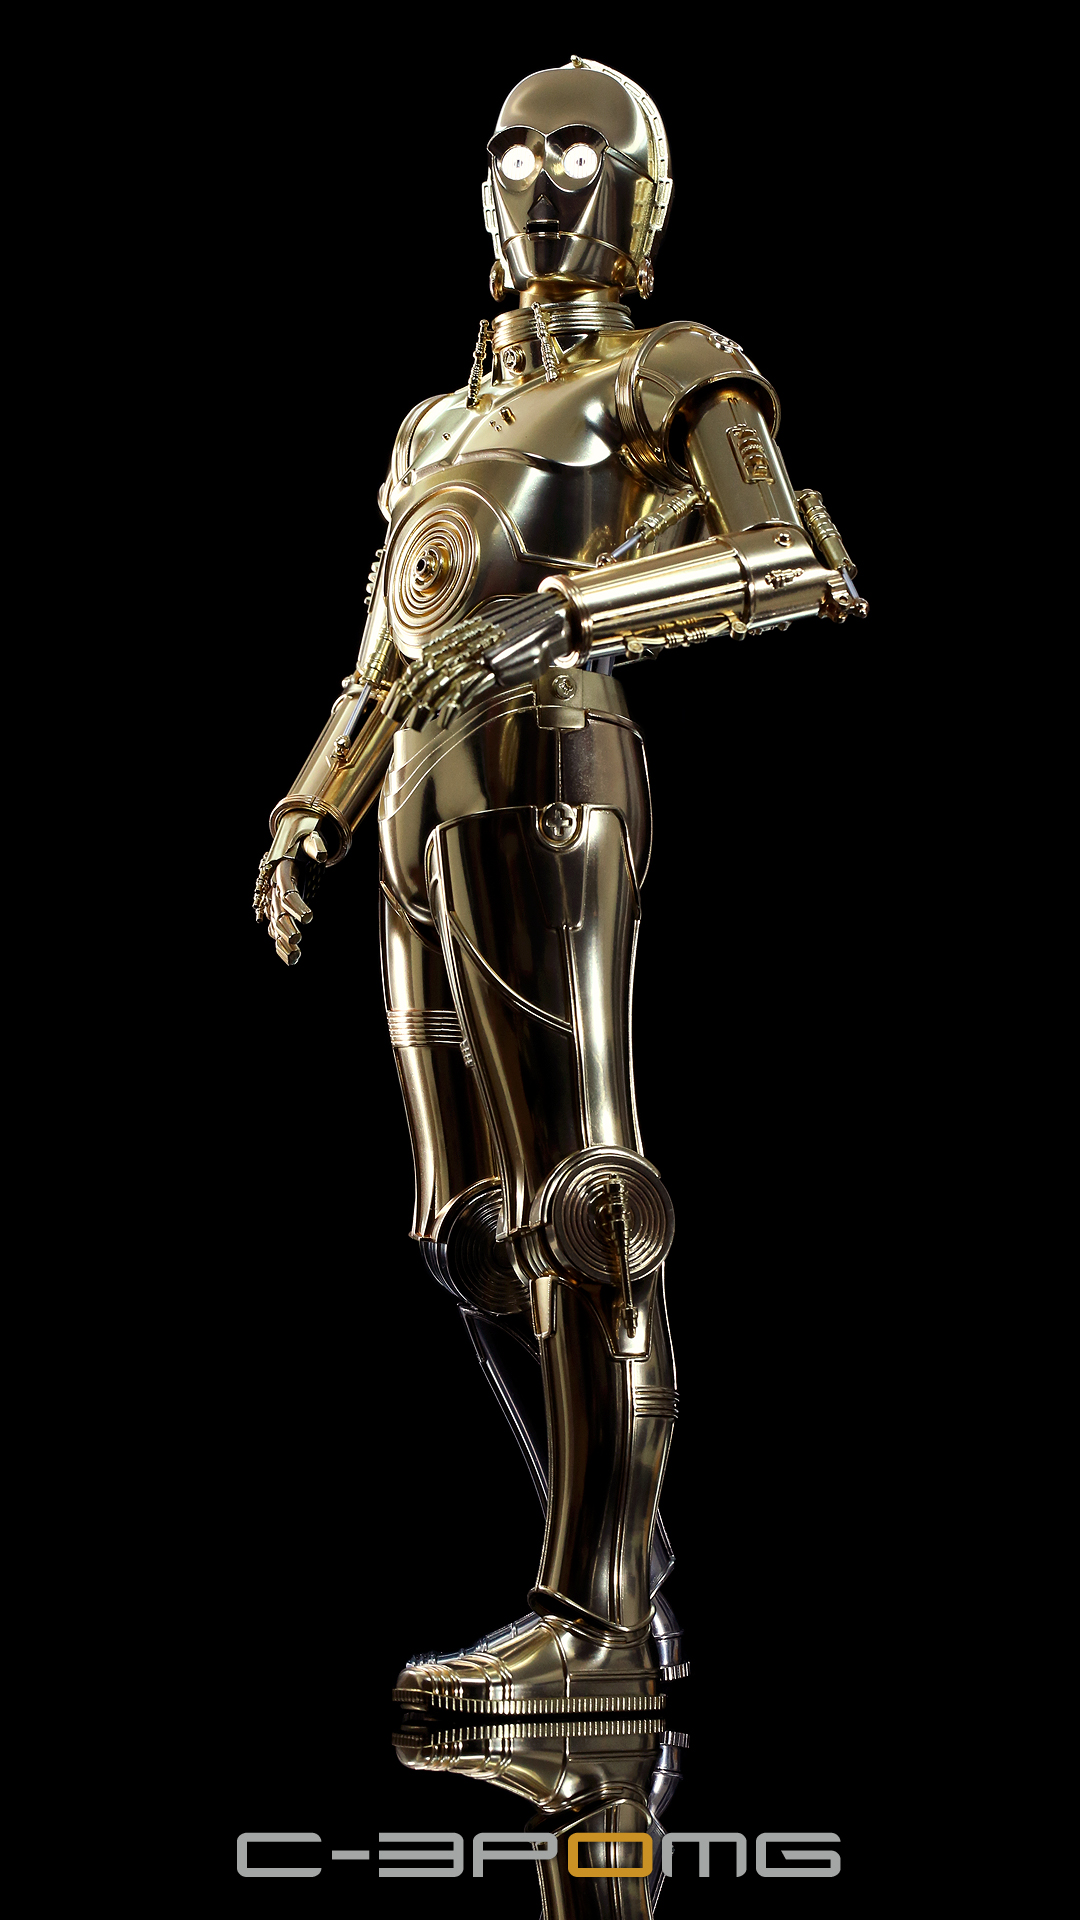 [Bandai] Star Wars: C-3PO - Perfect Model 1/6 scale - LANÇADO!!! - Página 2 C-3PO1012_zpsc7b1597b